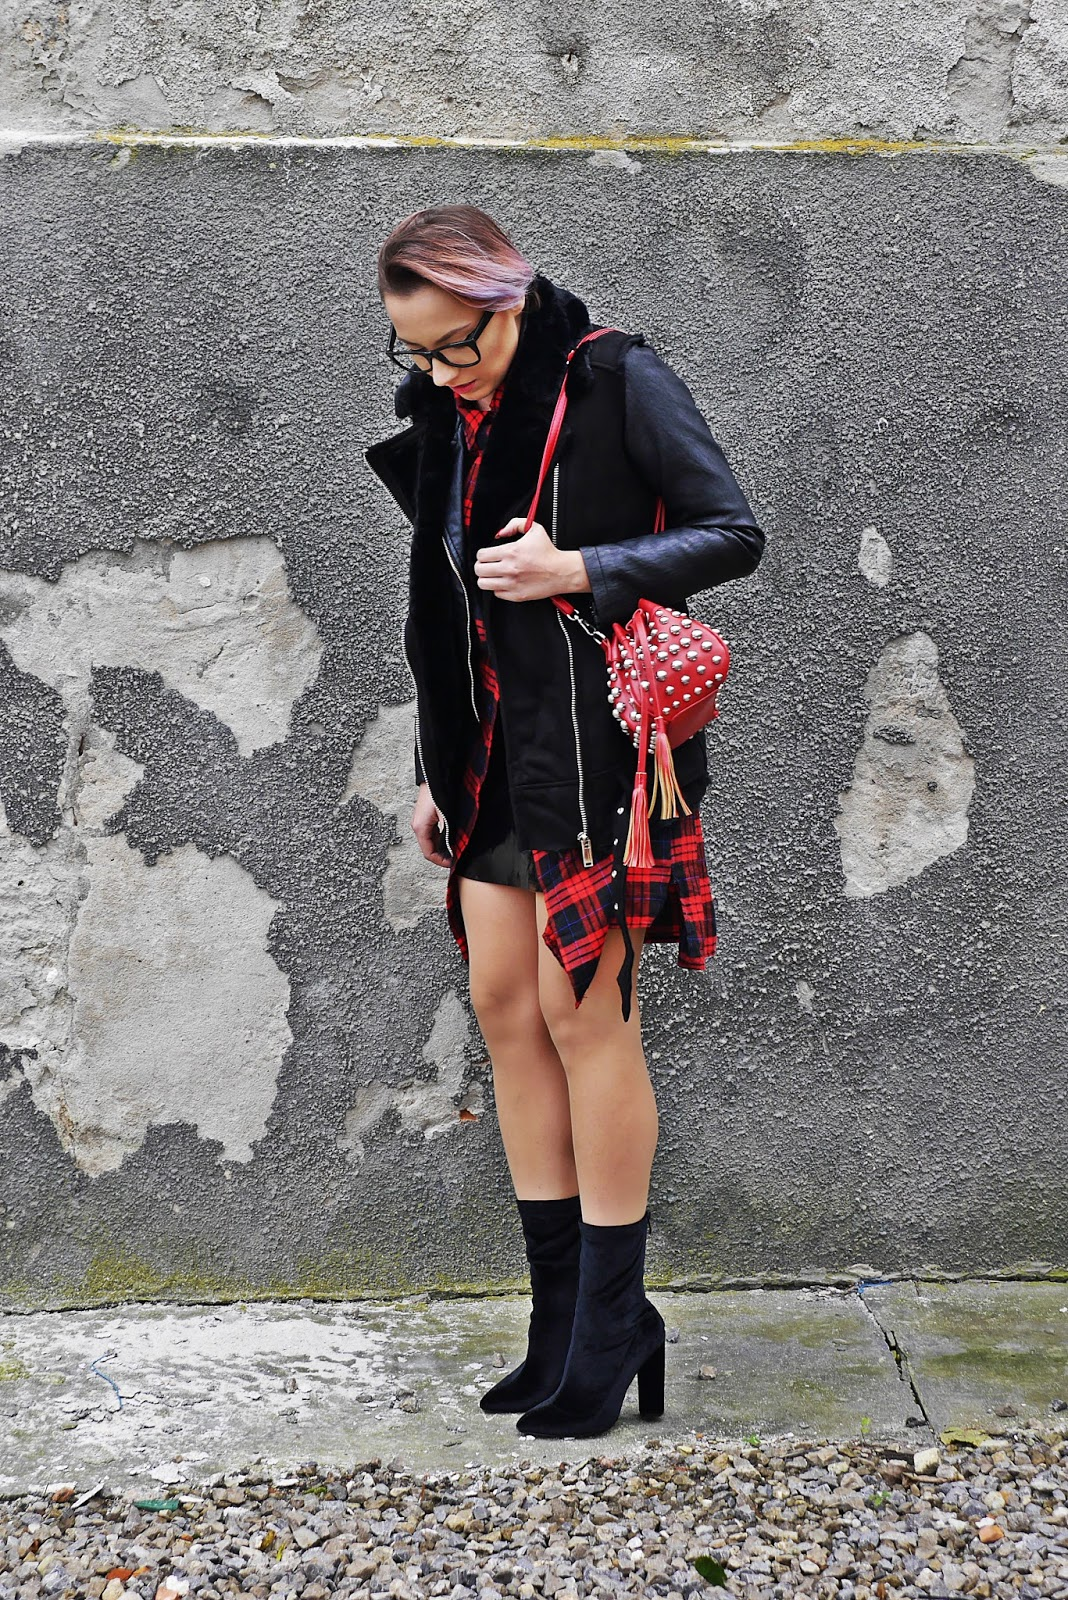 1_zara_west_fur_red_plaid_dress_socks_boots_karyn_blog_modowy_021117d